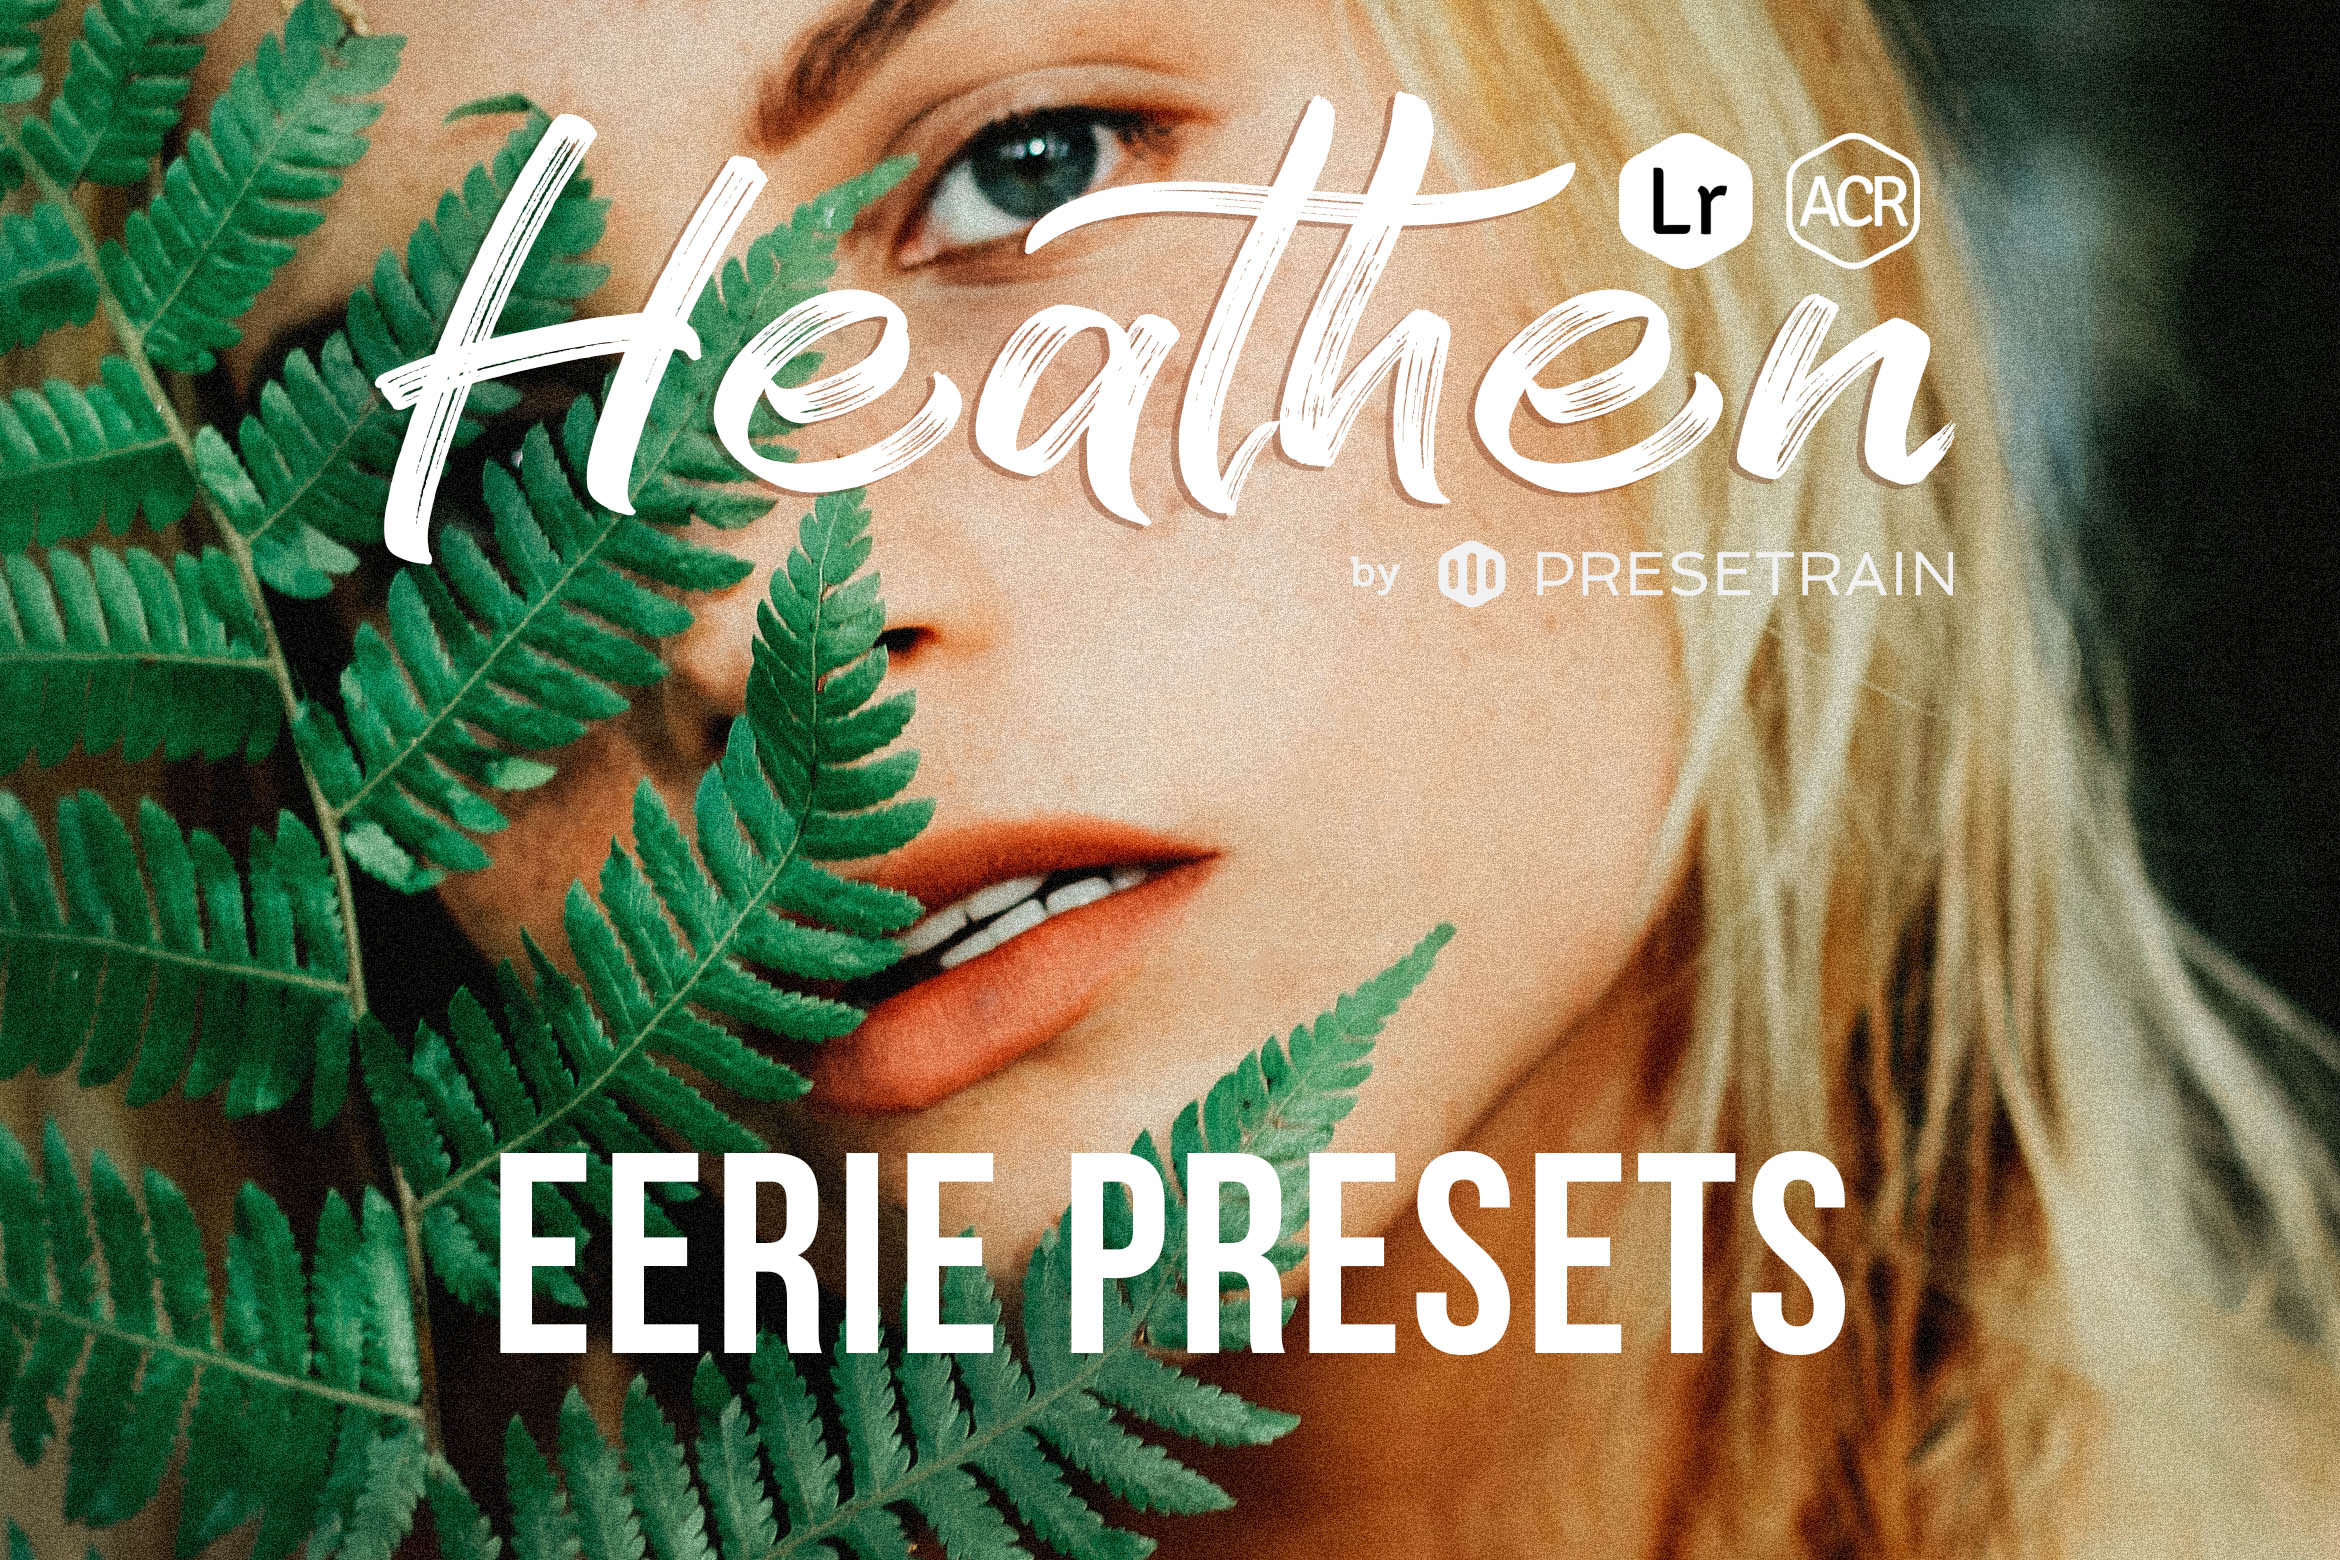 Heathen Eerie Presets for desktop and mo